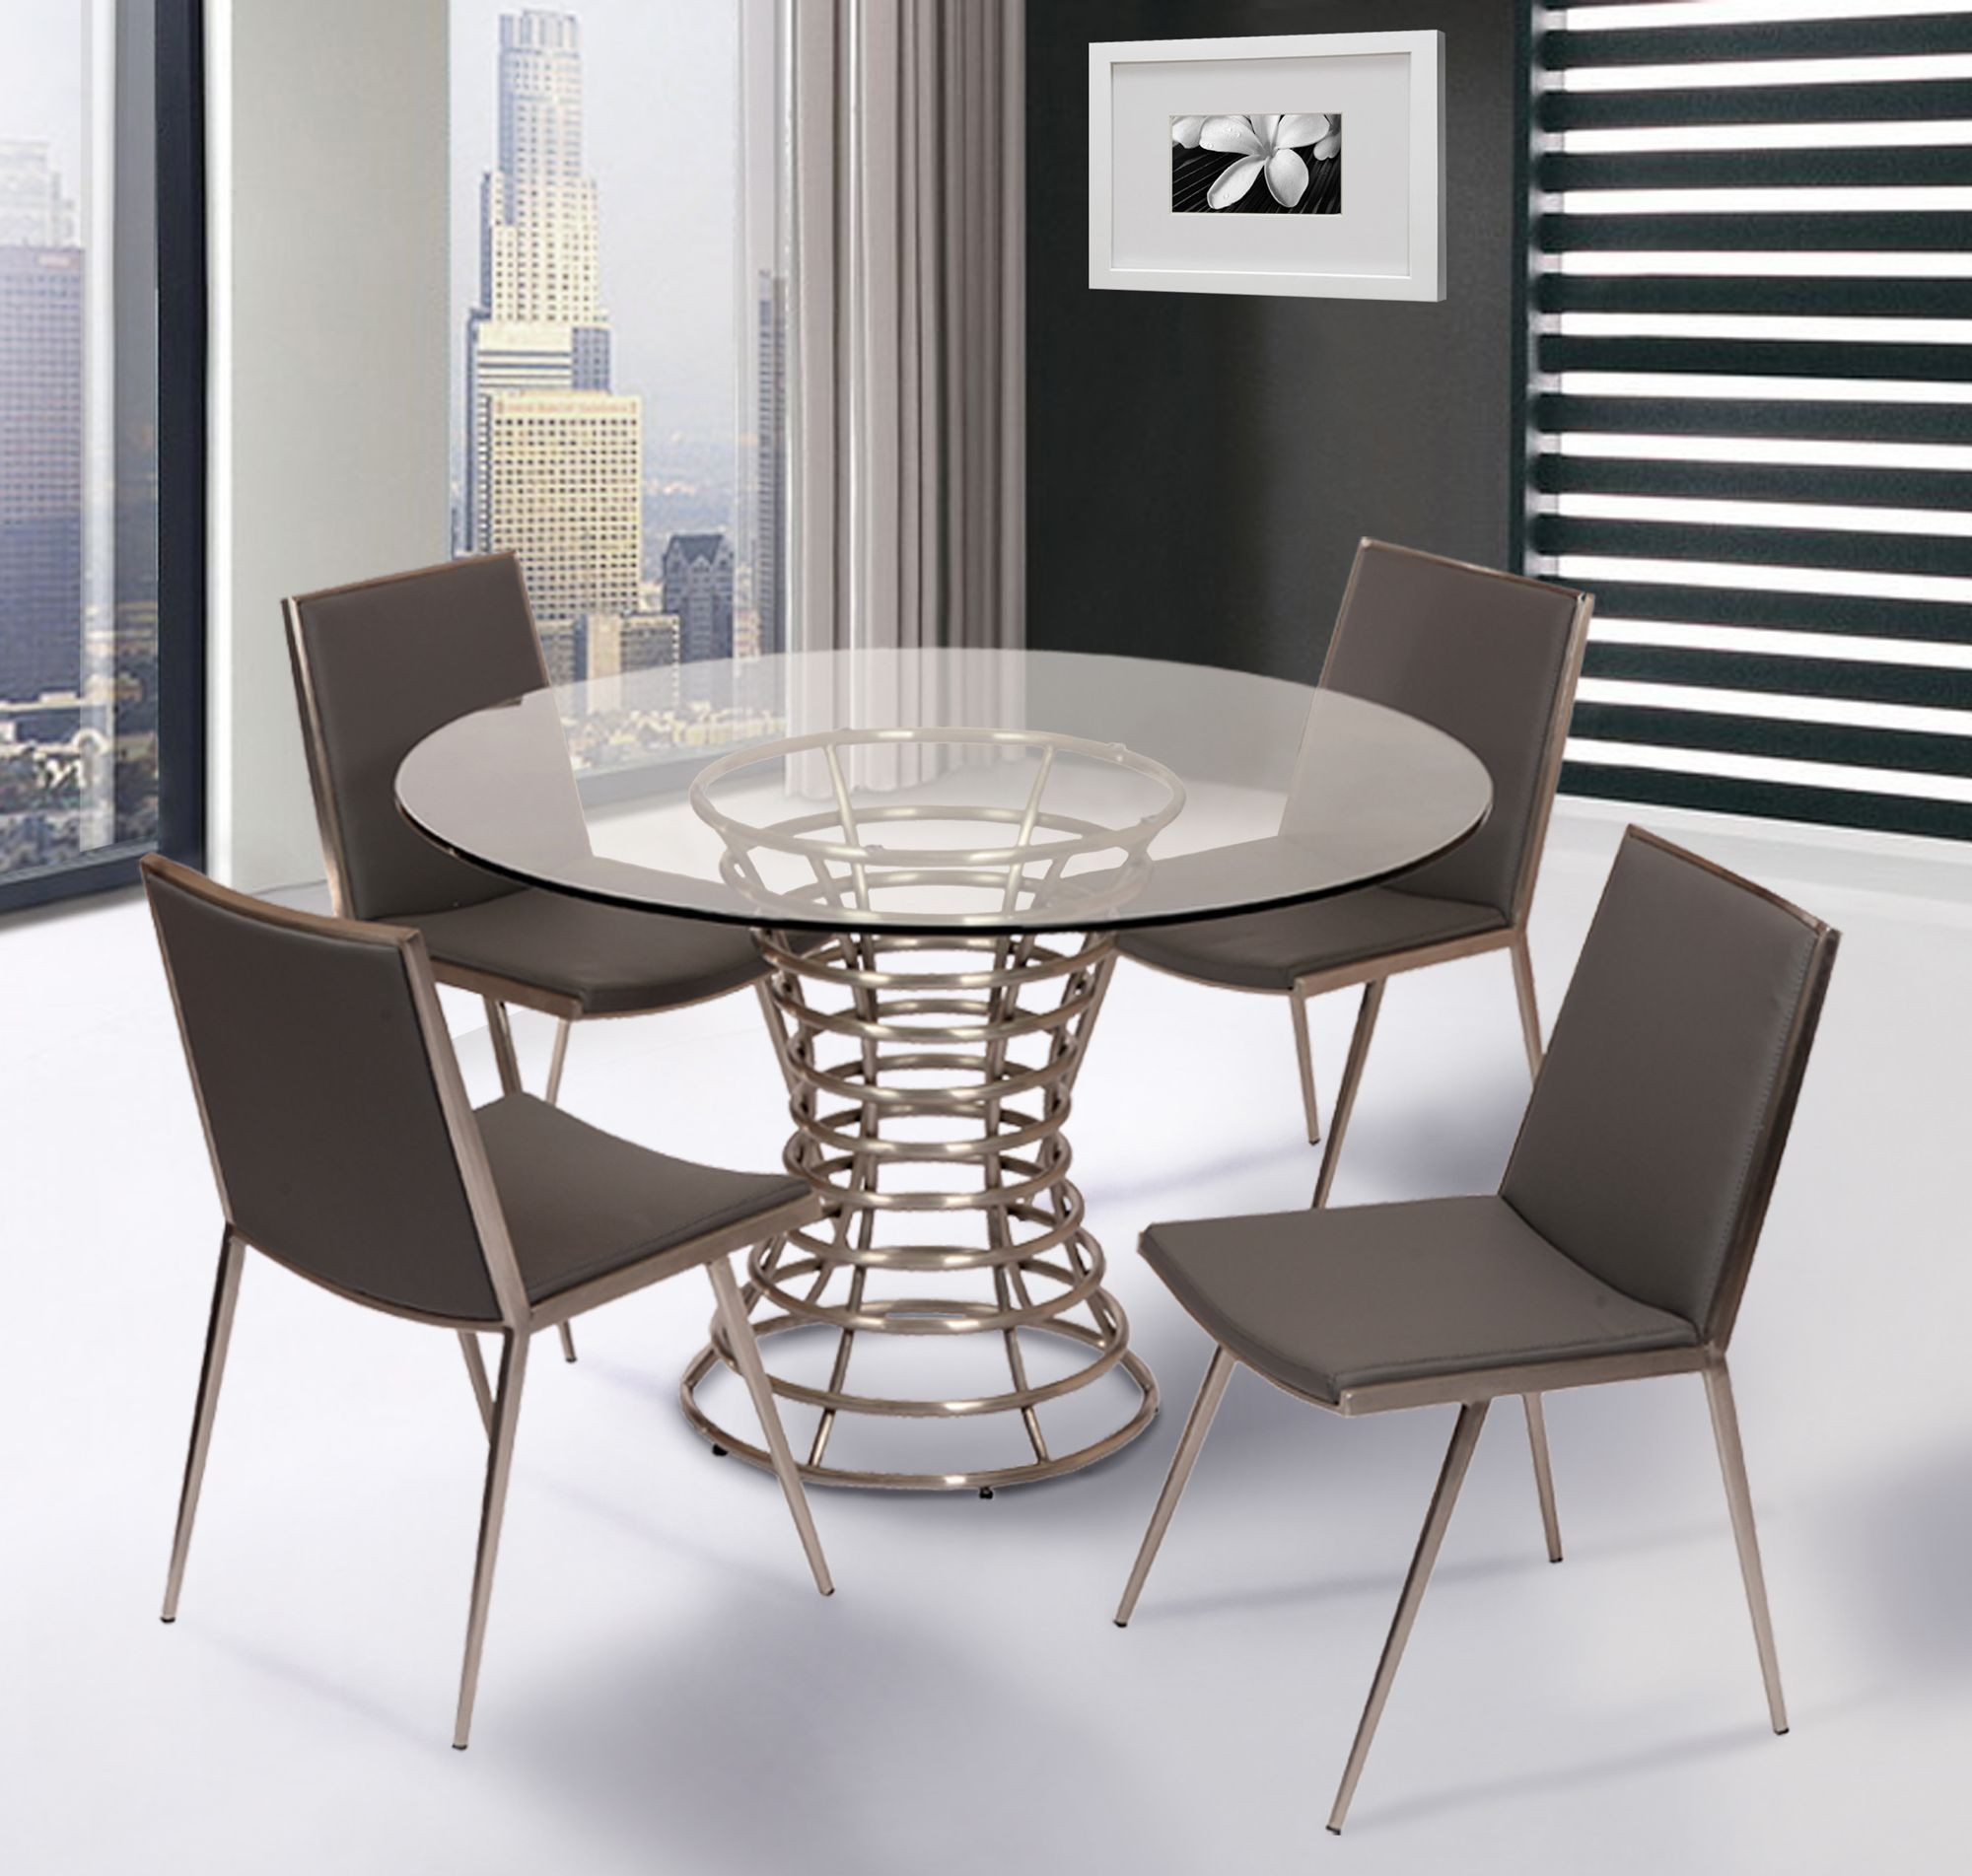 stainless steel dining room chairs | Ibiza Brushed Stainless Steel Dining Room Set, LCIBDIB201 ...